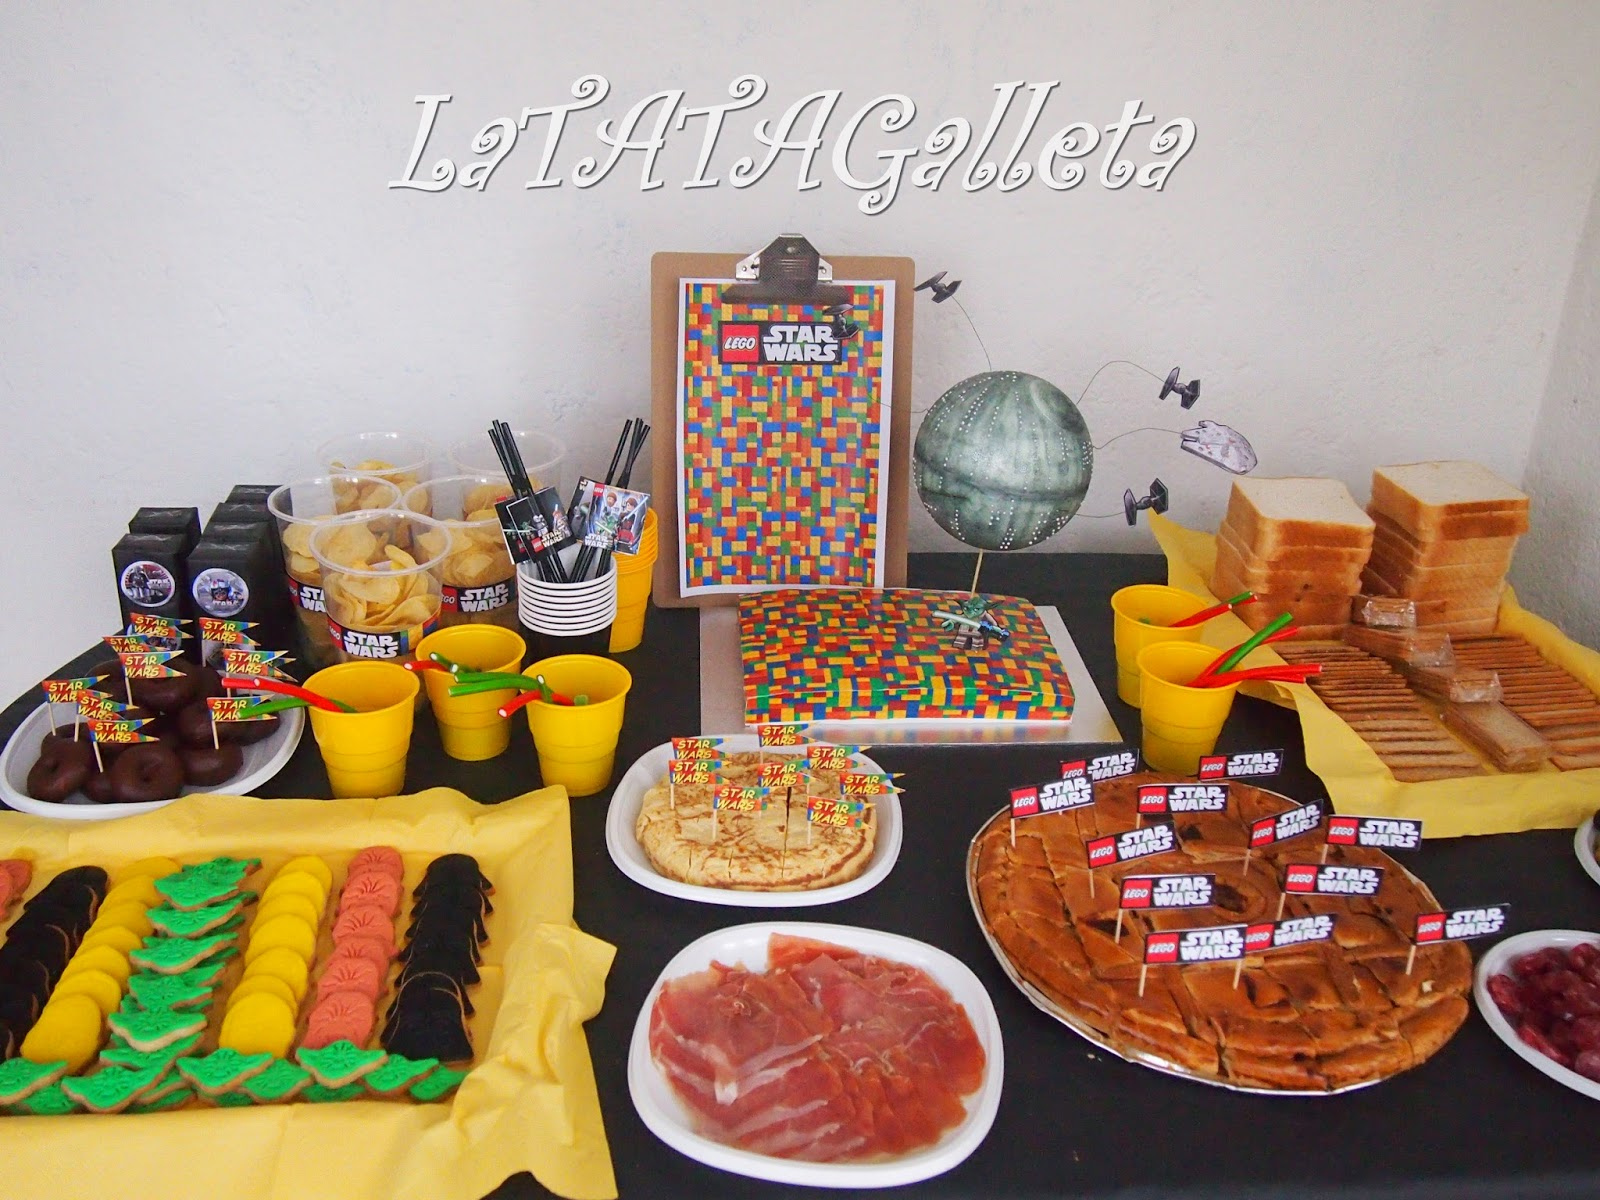 Latatagalleta agosto 2014 for Ideas para una cena de picoteo